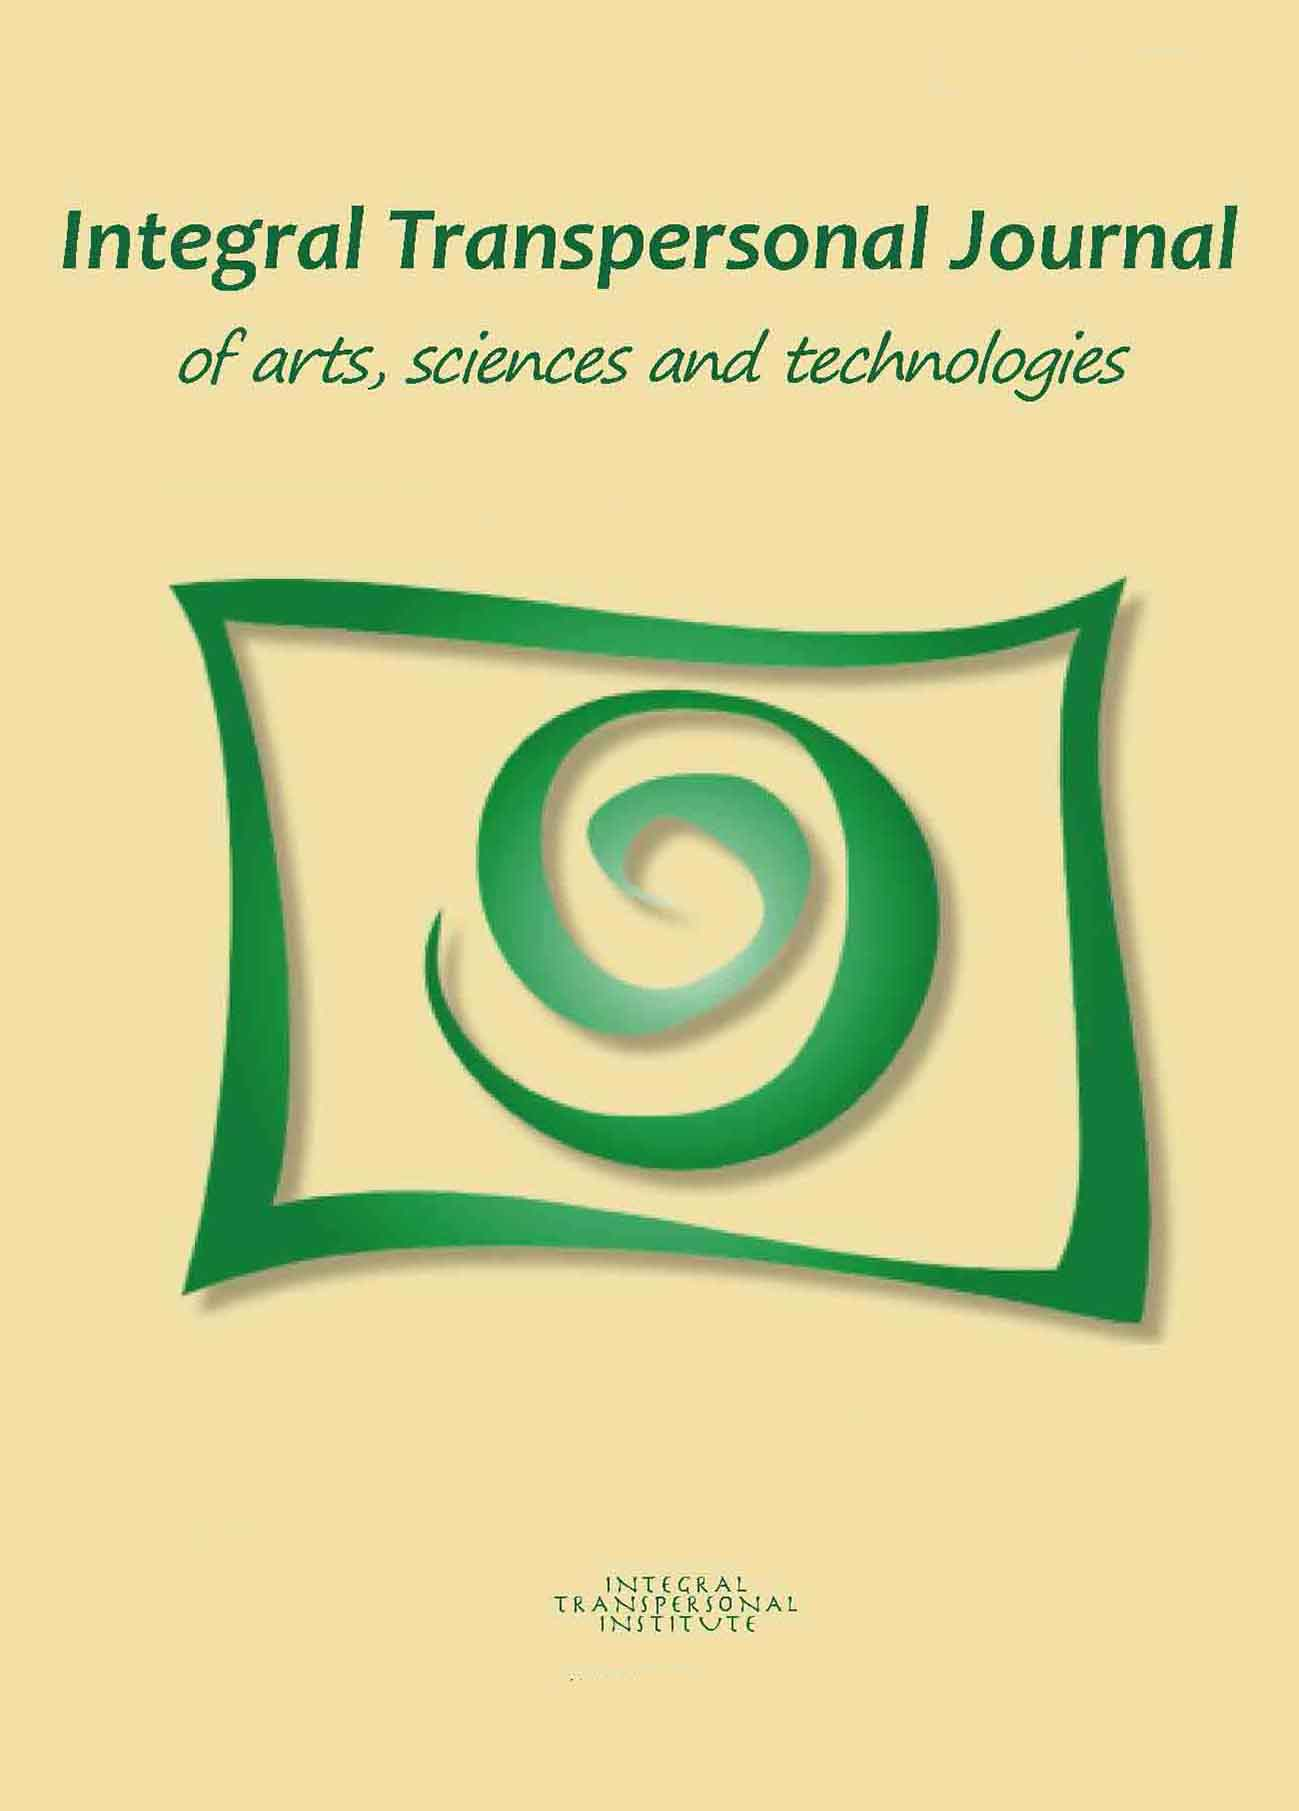 Integral Transpersonal Journal (ITJ) n. 0